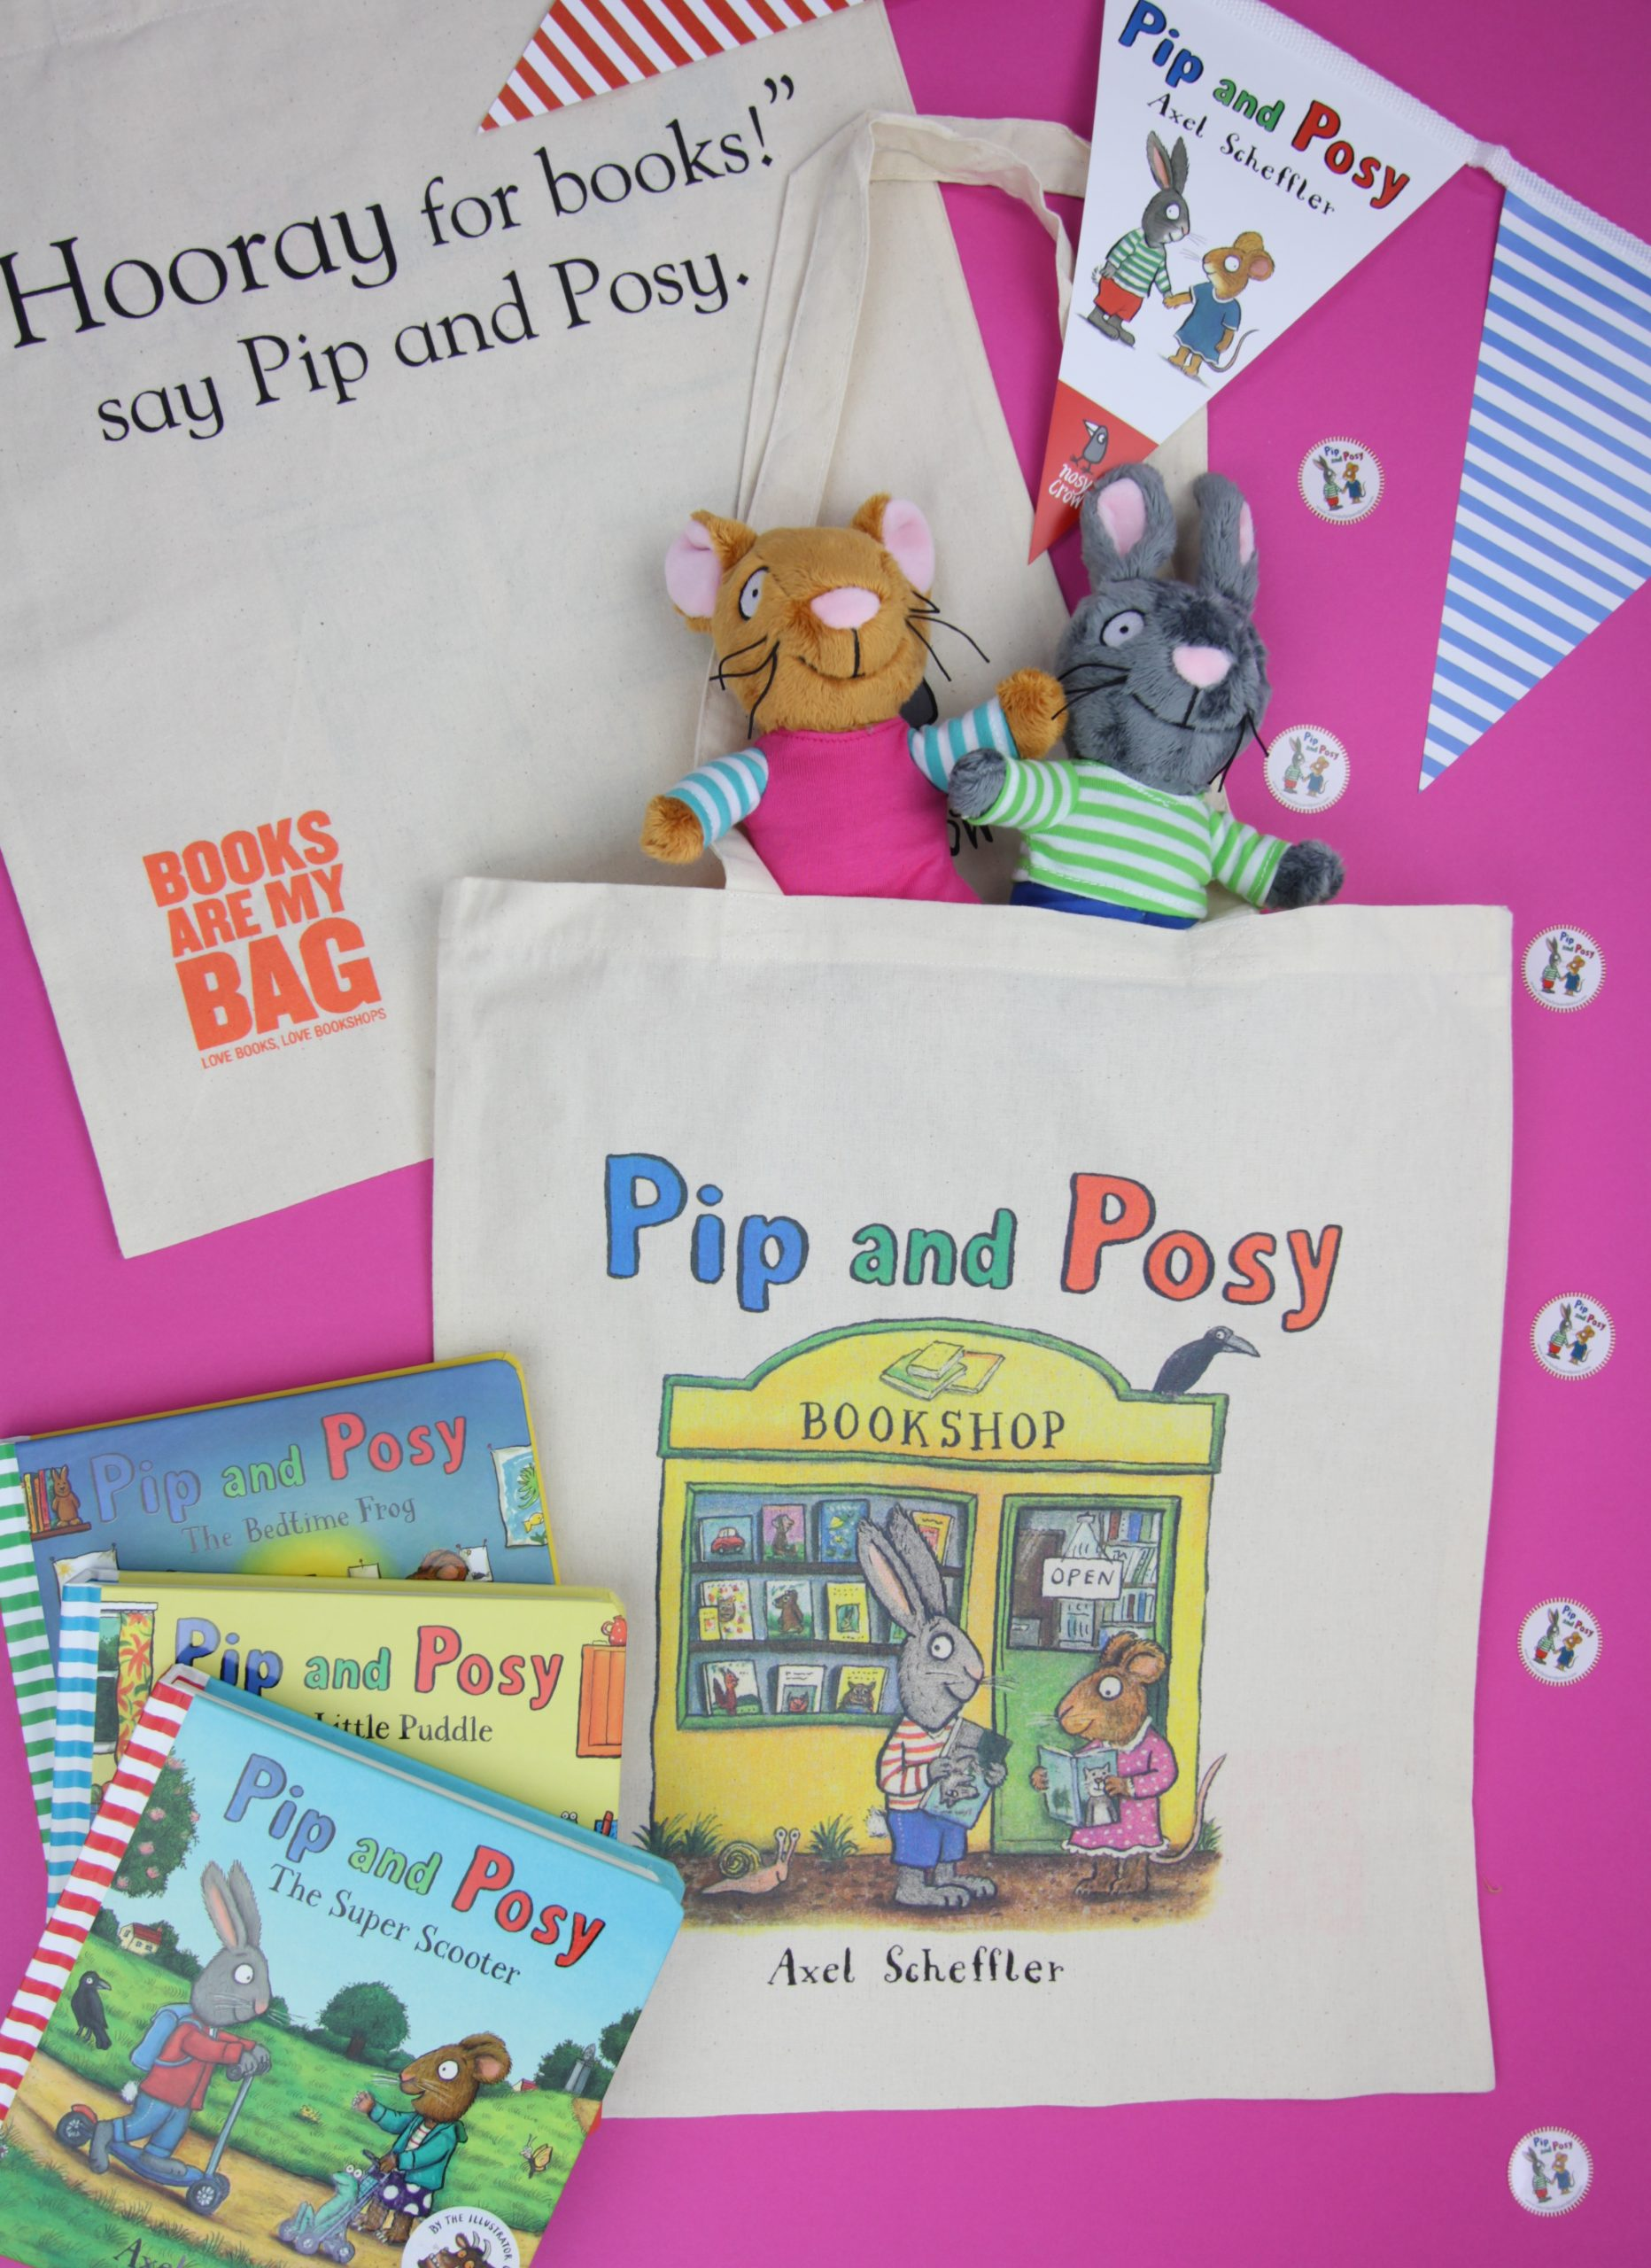 Pip and Posy - Books are my Bag